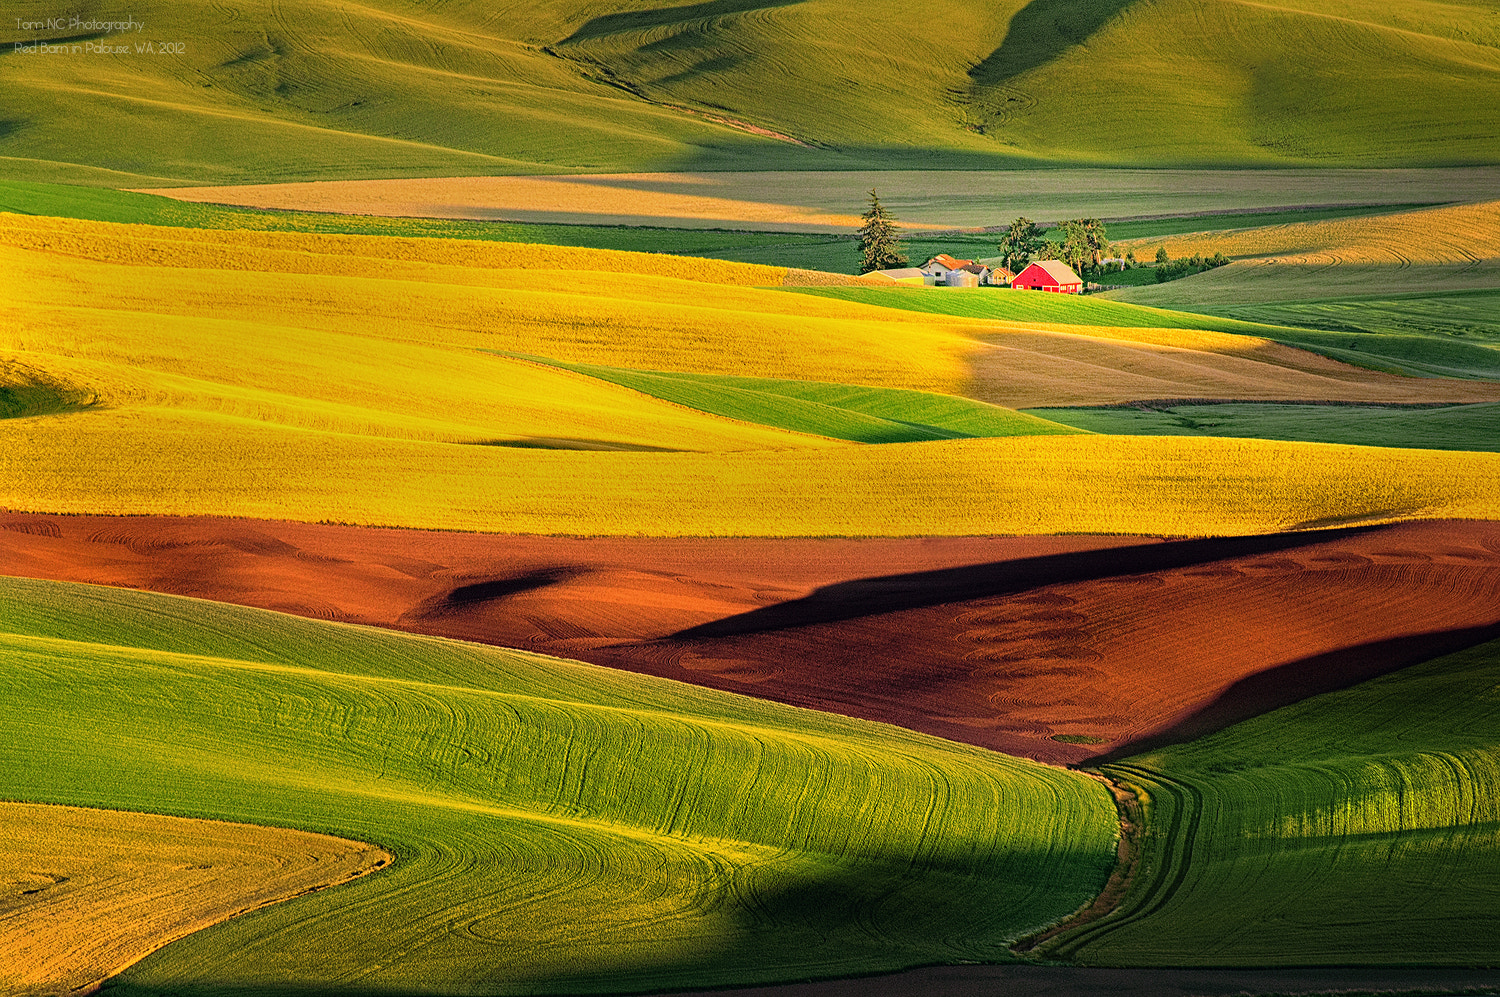 Photograph The Red Barn in Palouse Hill by Noppawat Charoensinphon on 500px